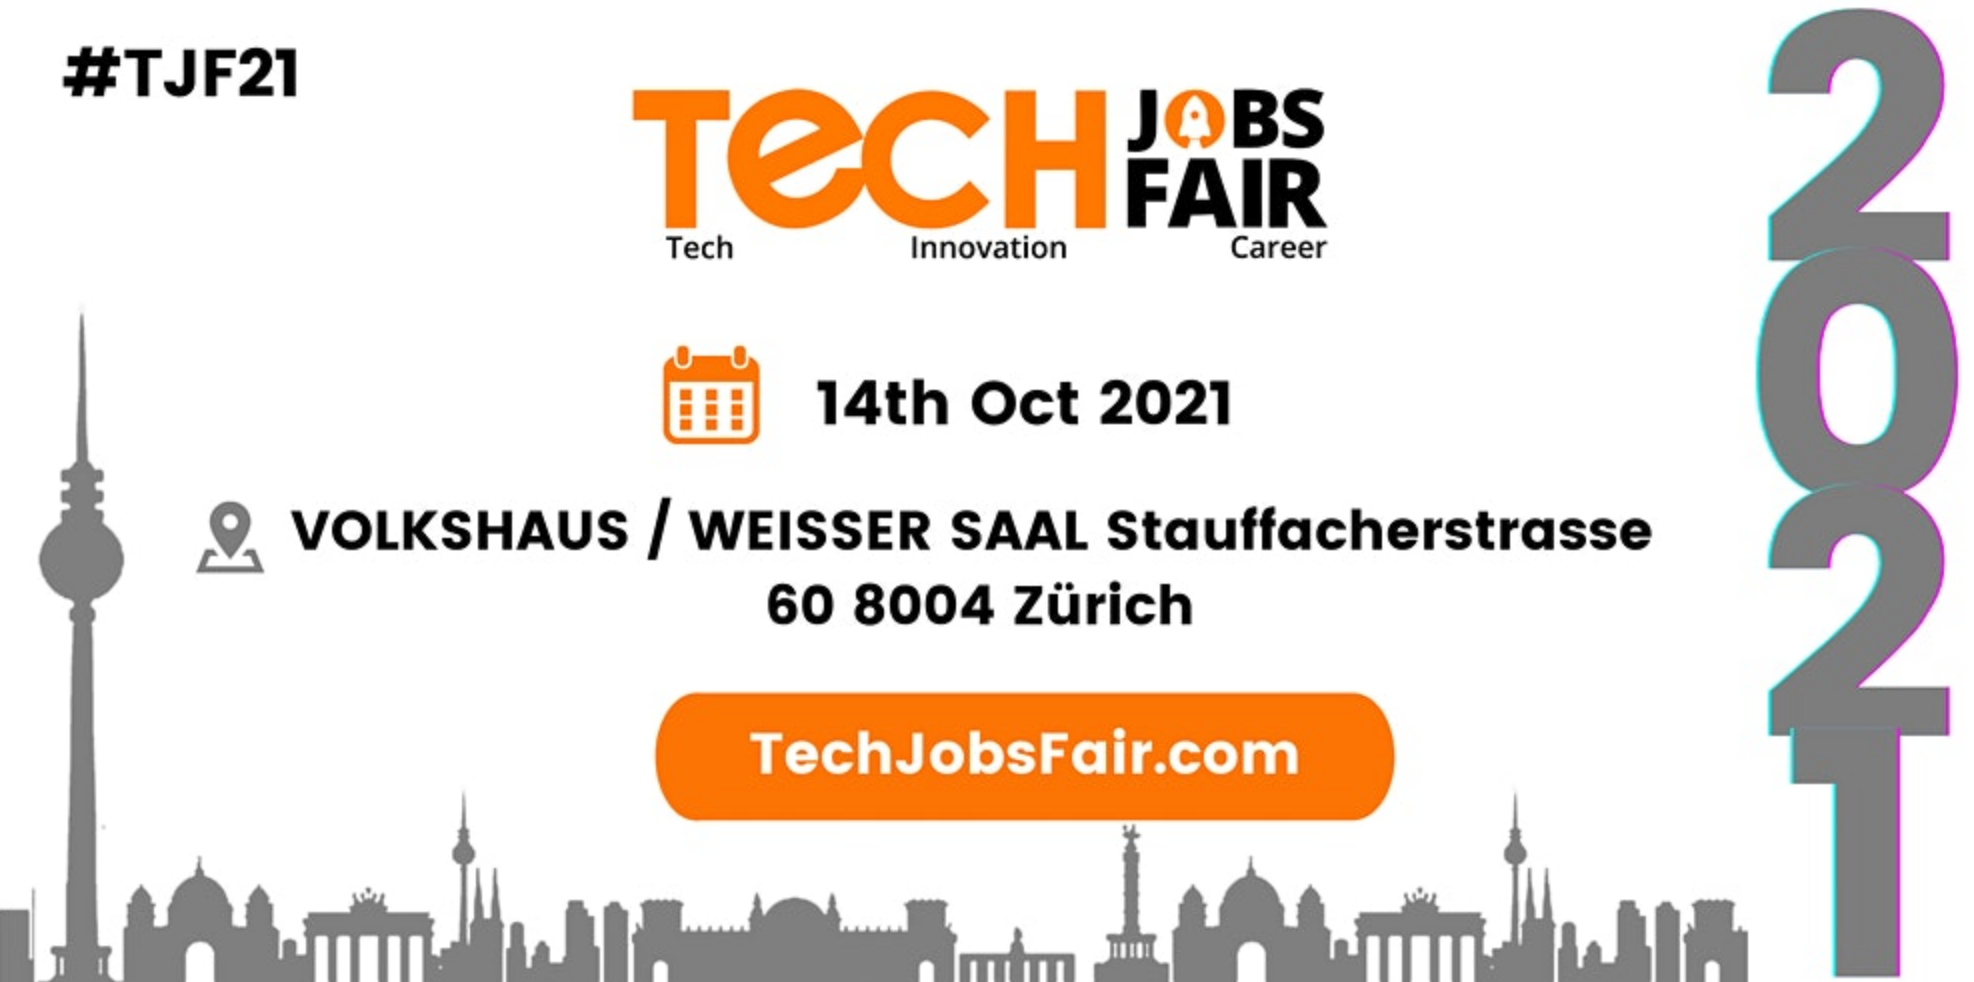 Tech Jobs Fair Zurich 2021